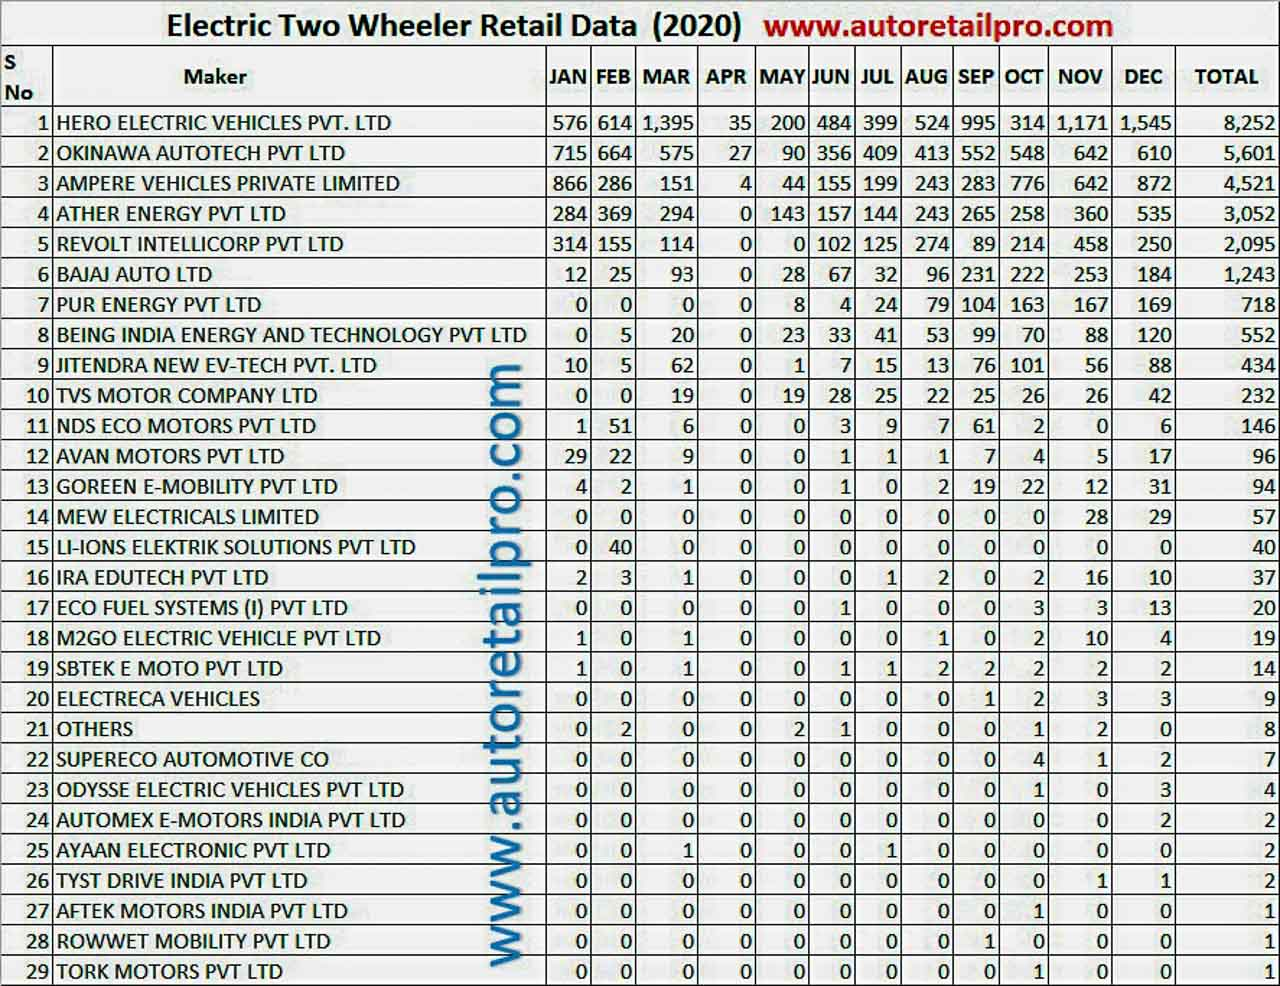 Electric Two Wheeler Sales Registrations 2020